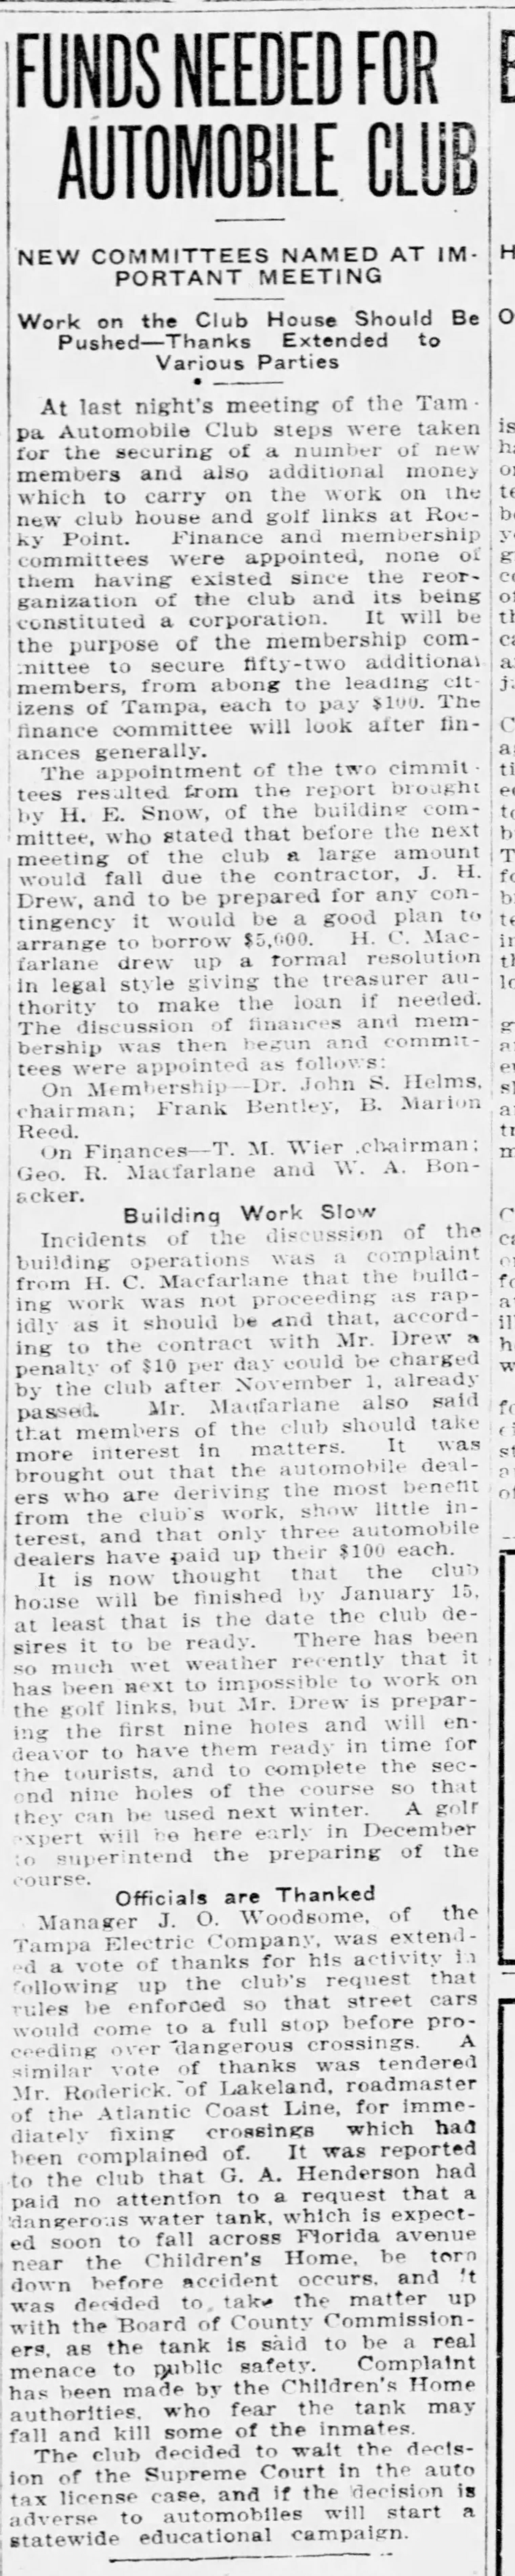 Funds Needed for Automobile Club - Nov 10, 1911 Tampa Tribune